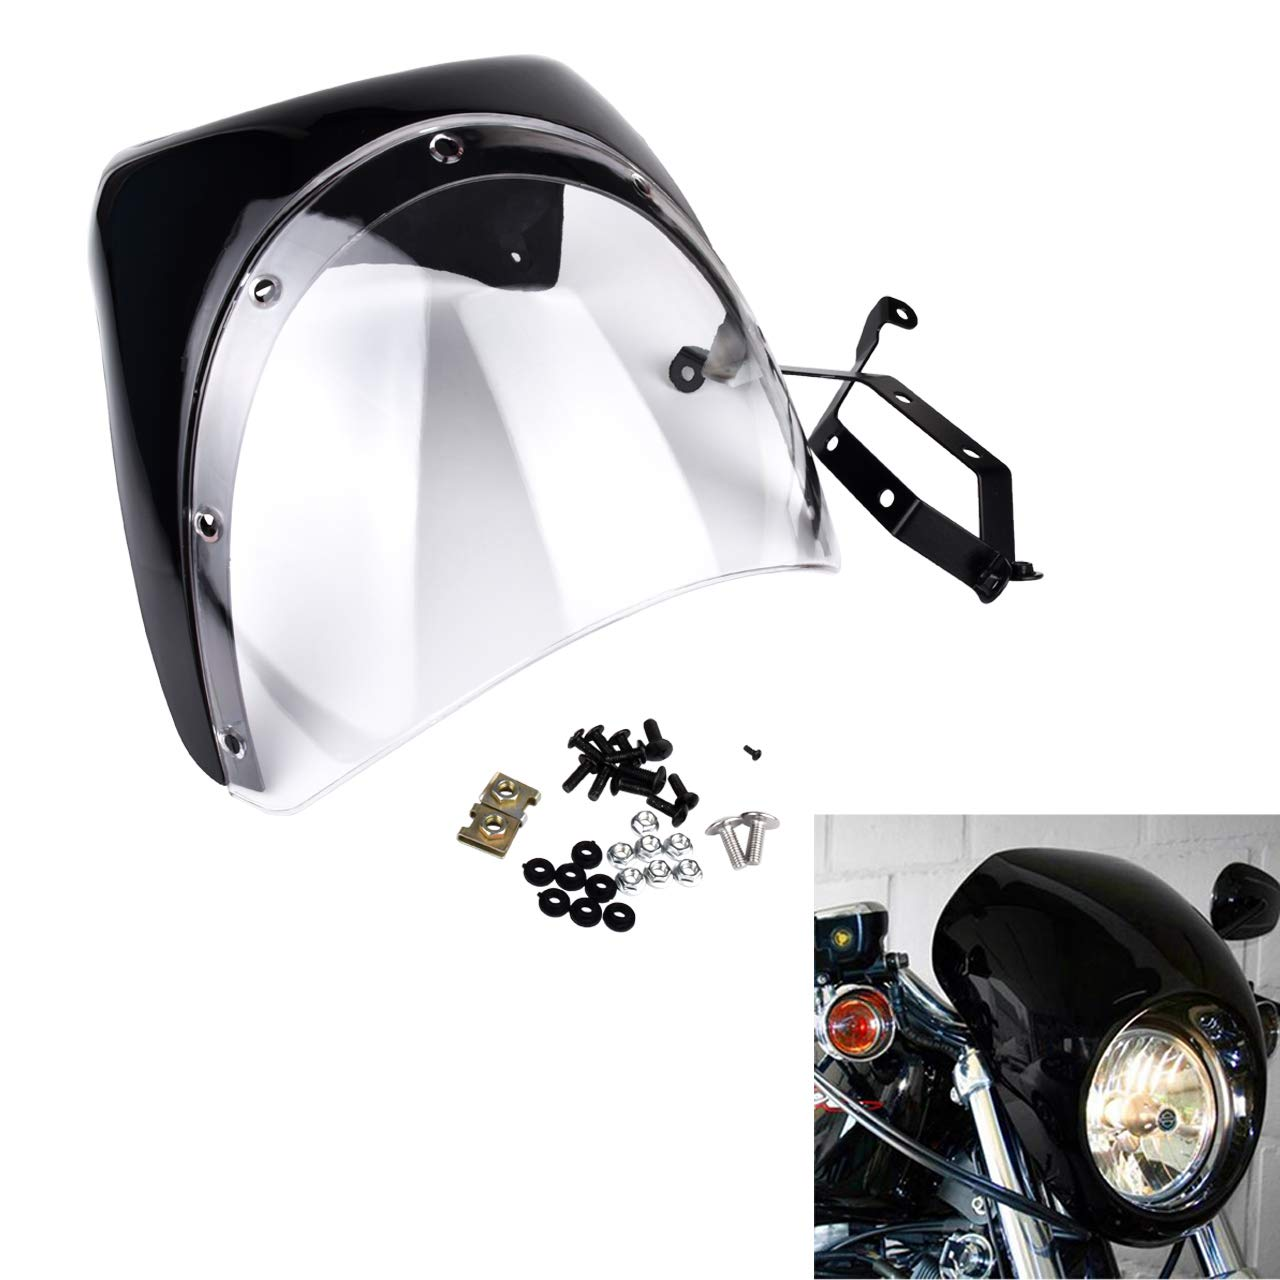 Black With Smoke Lens KATUR Motorcycle 7 Headlight Protector Fairing Windshield Kit Universal Screen Cafe Racer Style Fit for Harley Dyna Sportster 1200 883 FLHT Bobber Touring